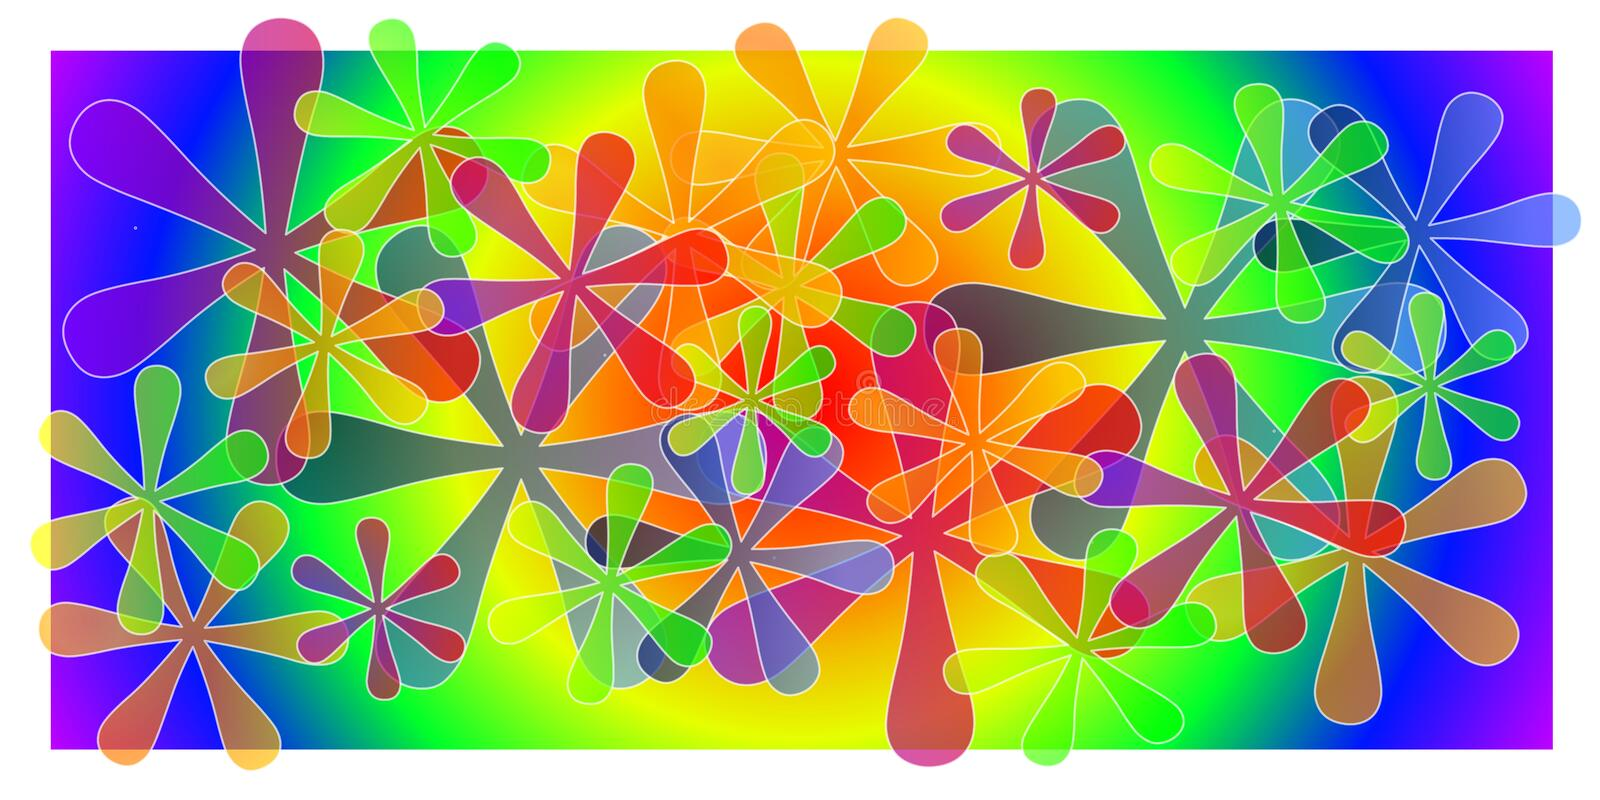 Wide Color Artistic Background. A wide background pattern featuring a rainbow of colors and star/flower shapes casually arranged royalty free illustration